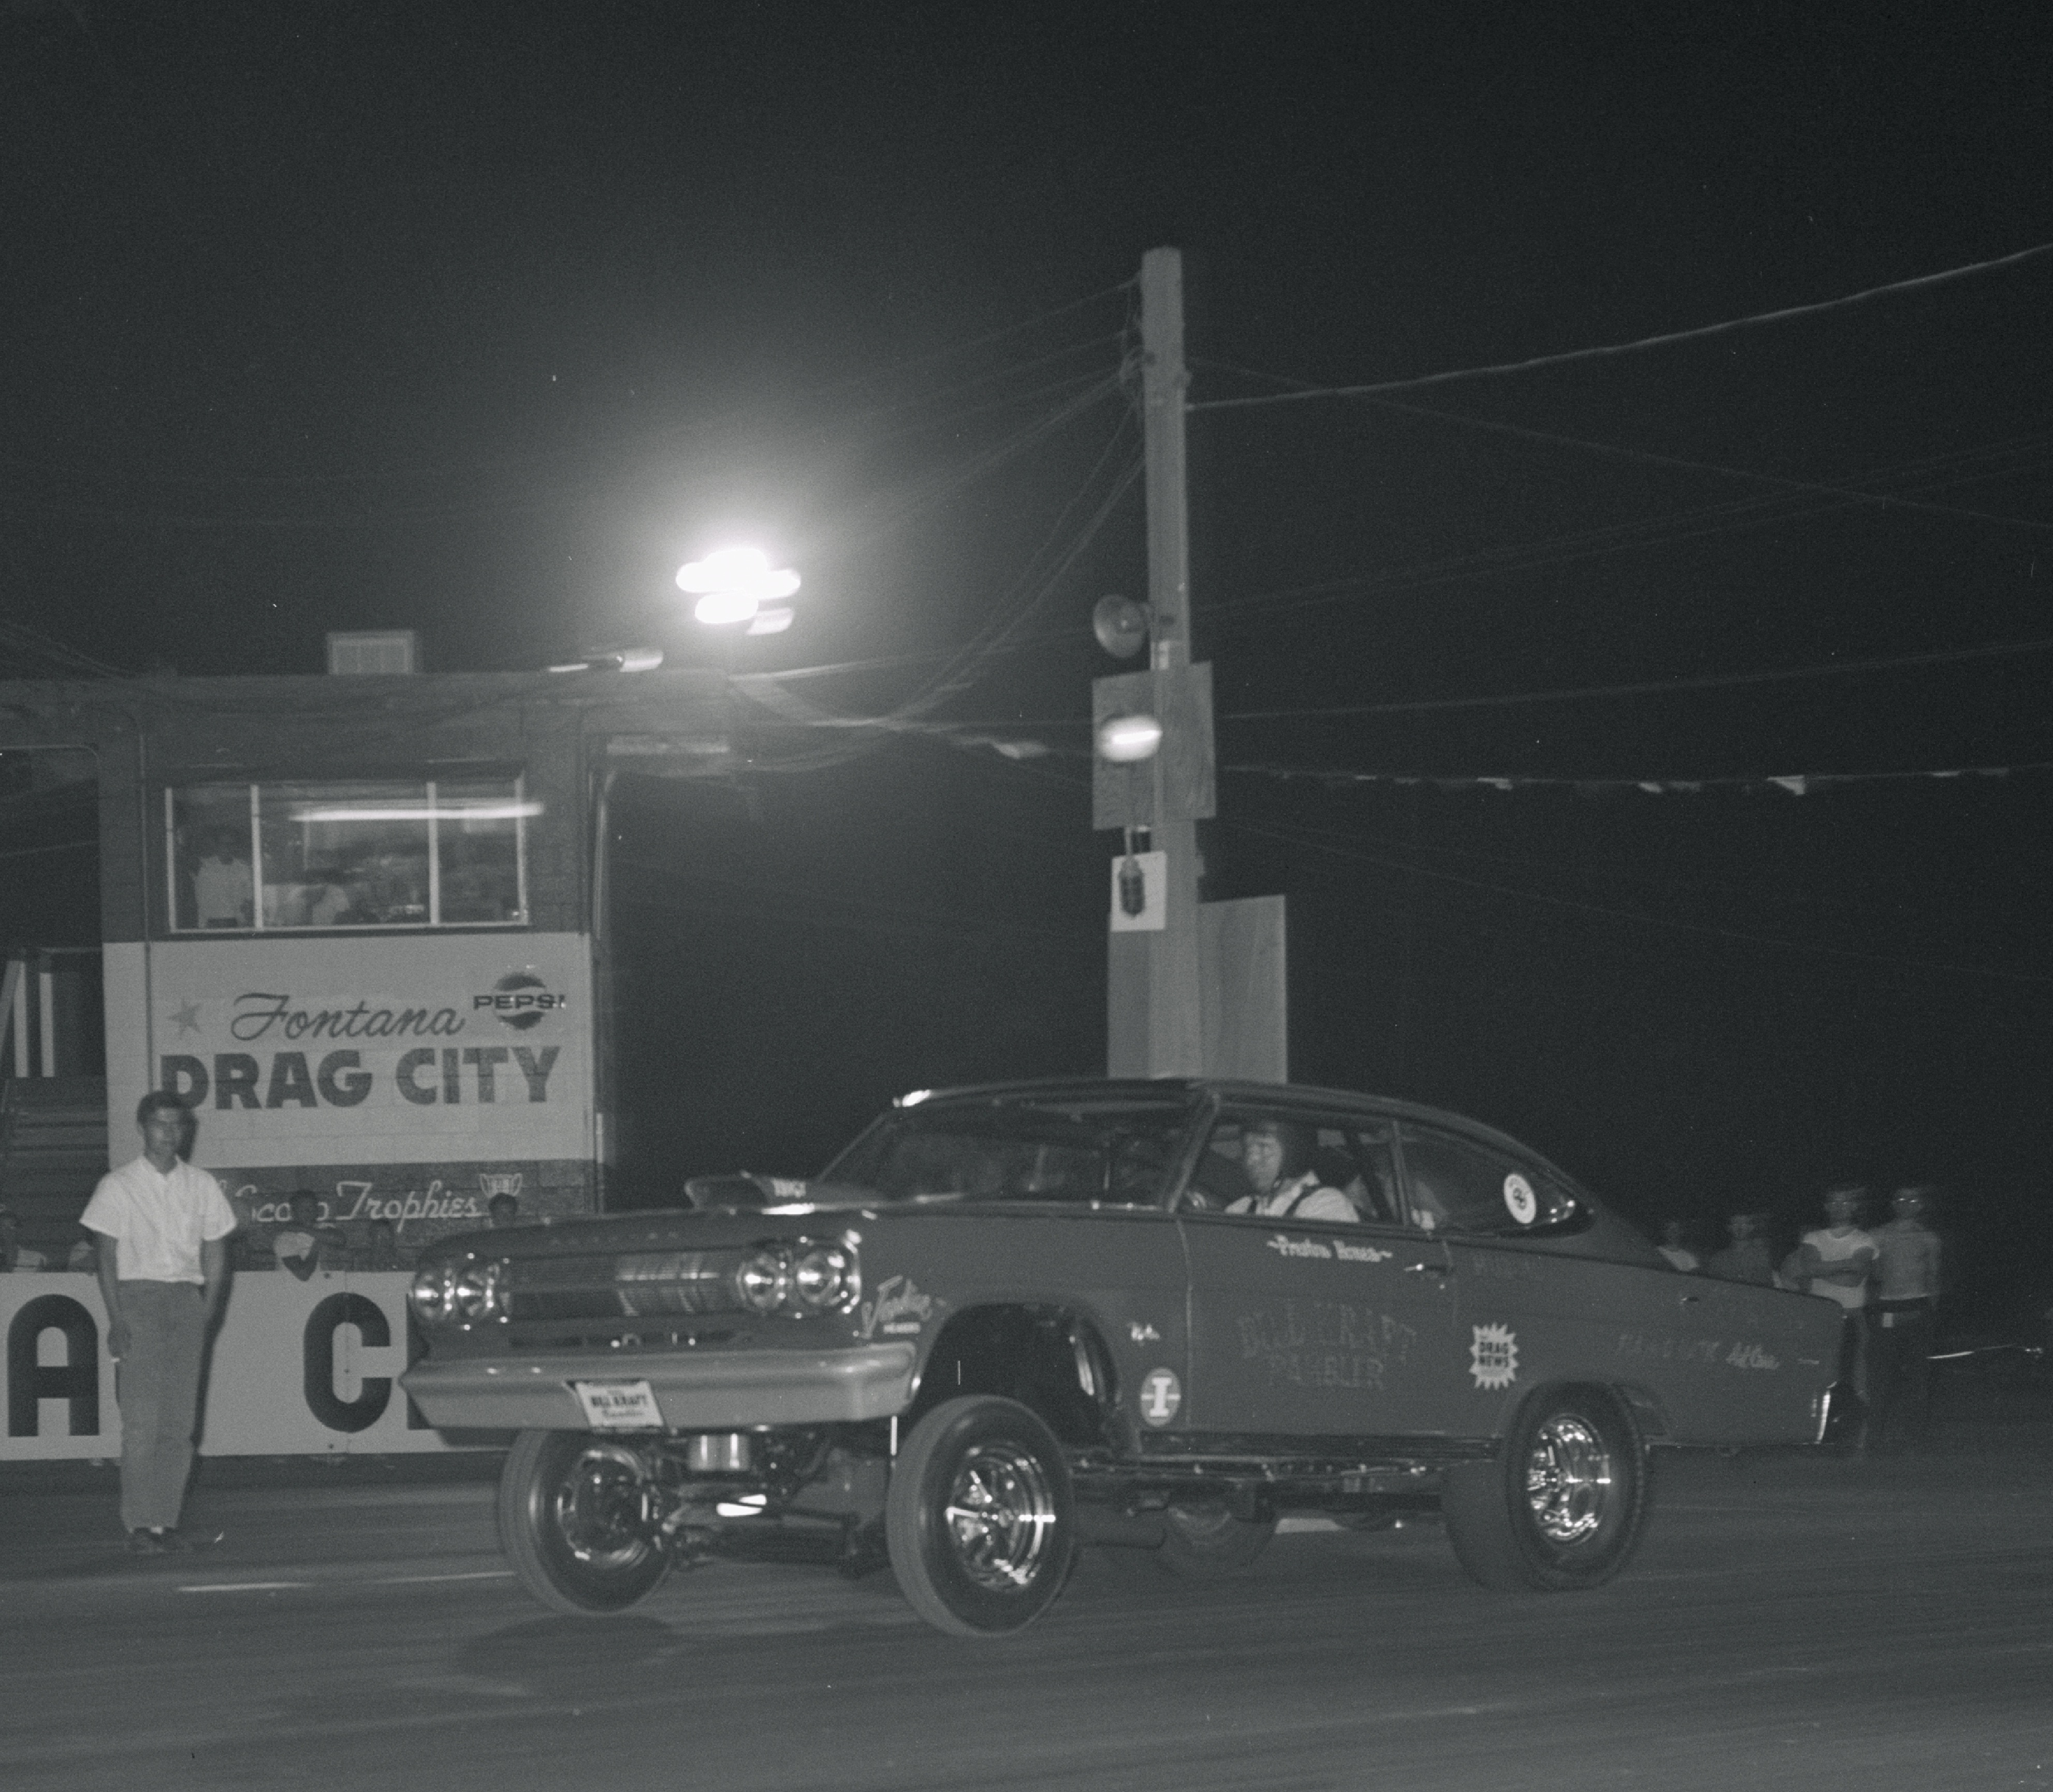 This is probably its second meet at Fontana Drag City the beginning of August '65. Love that night racing.